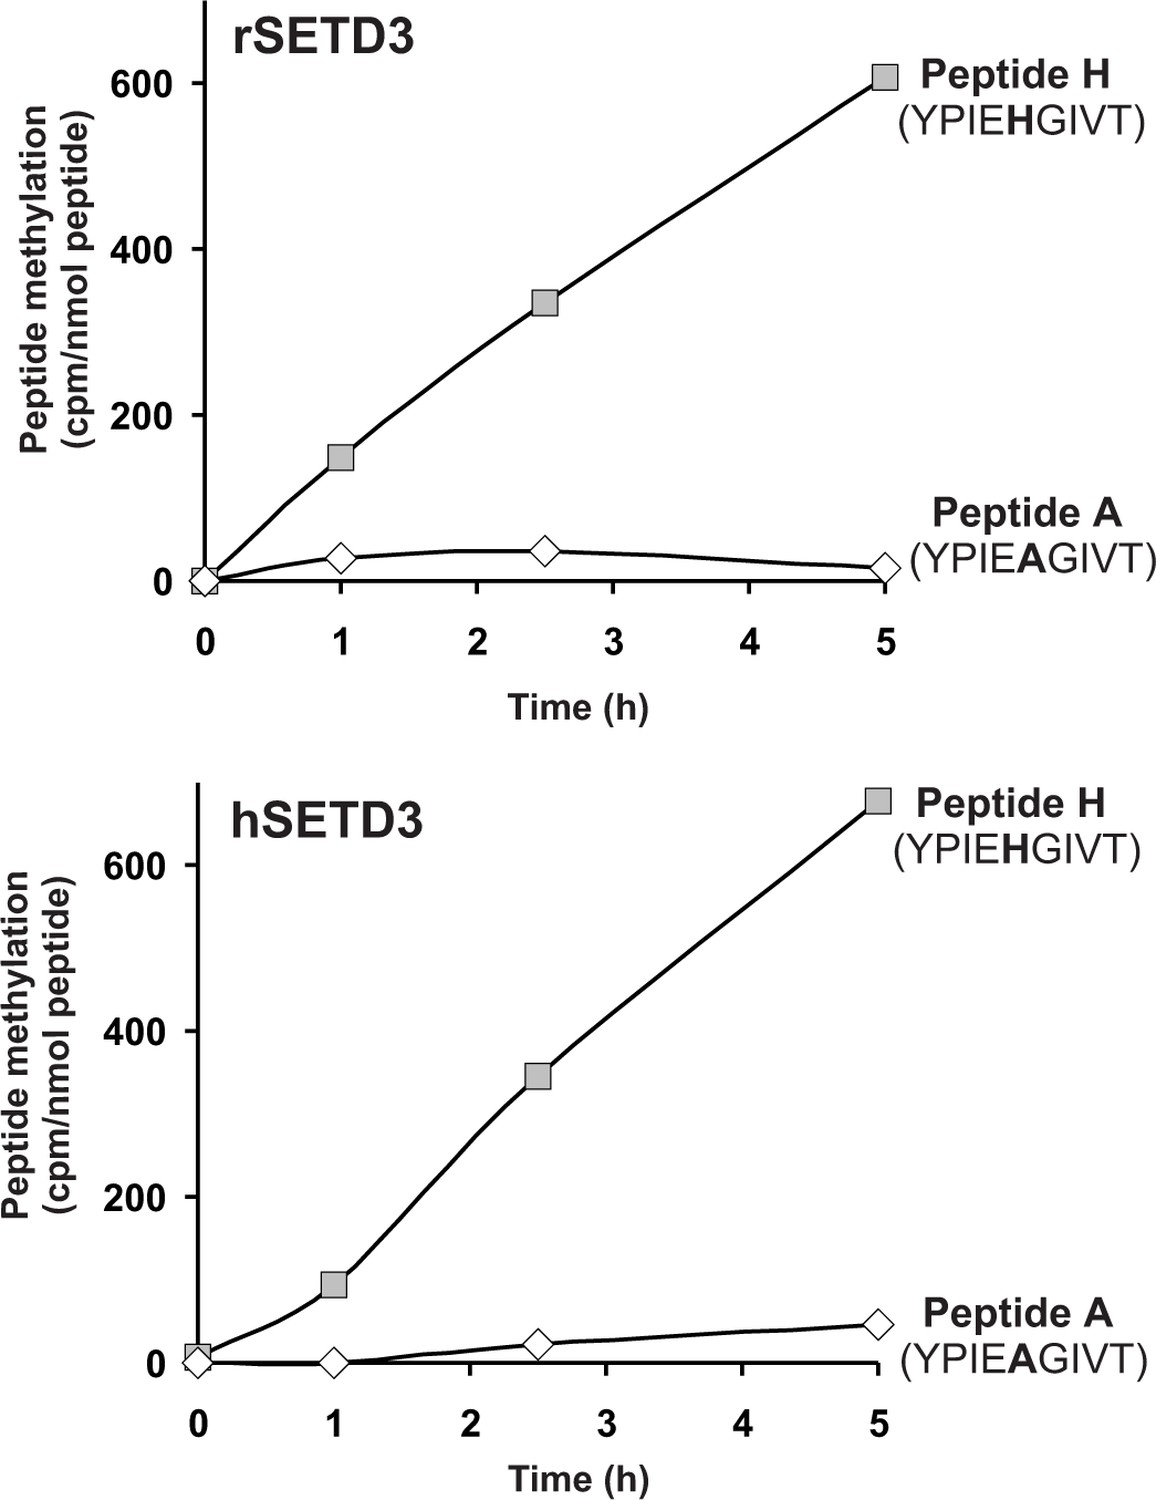 SETD3 protein is the actin-specific histidine N